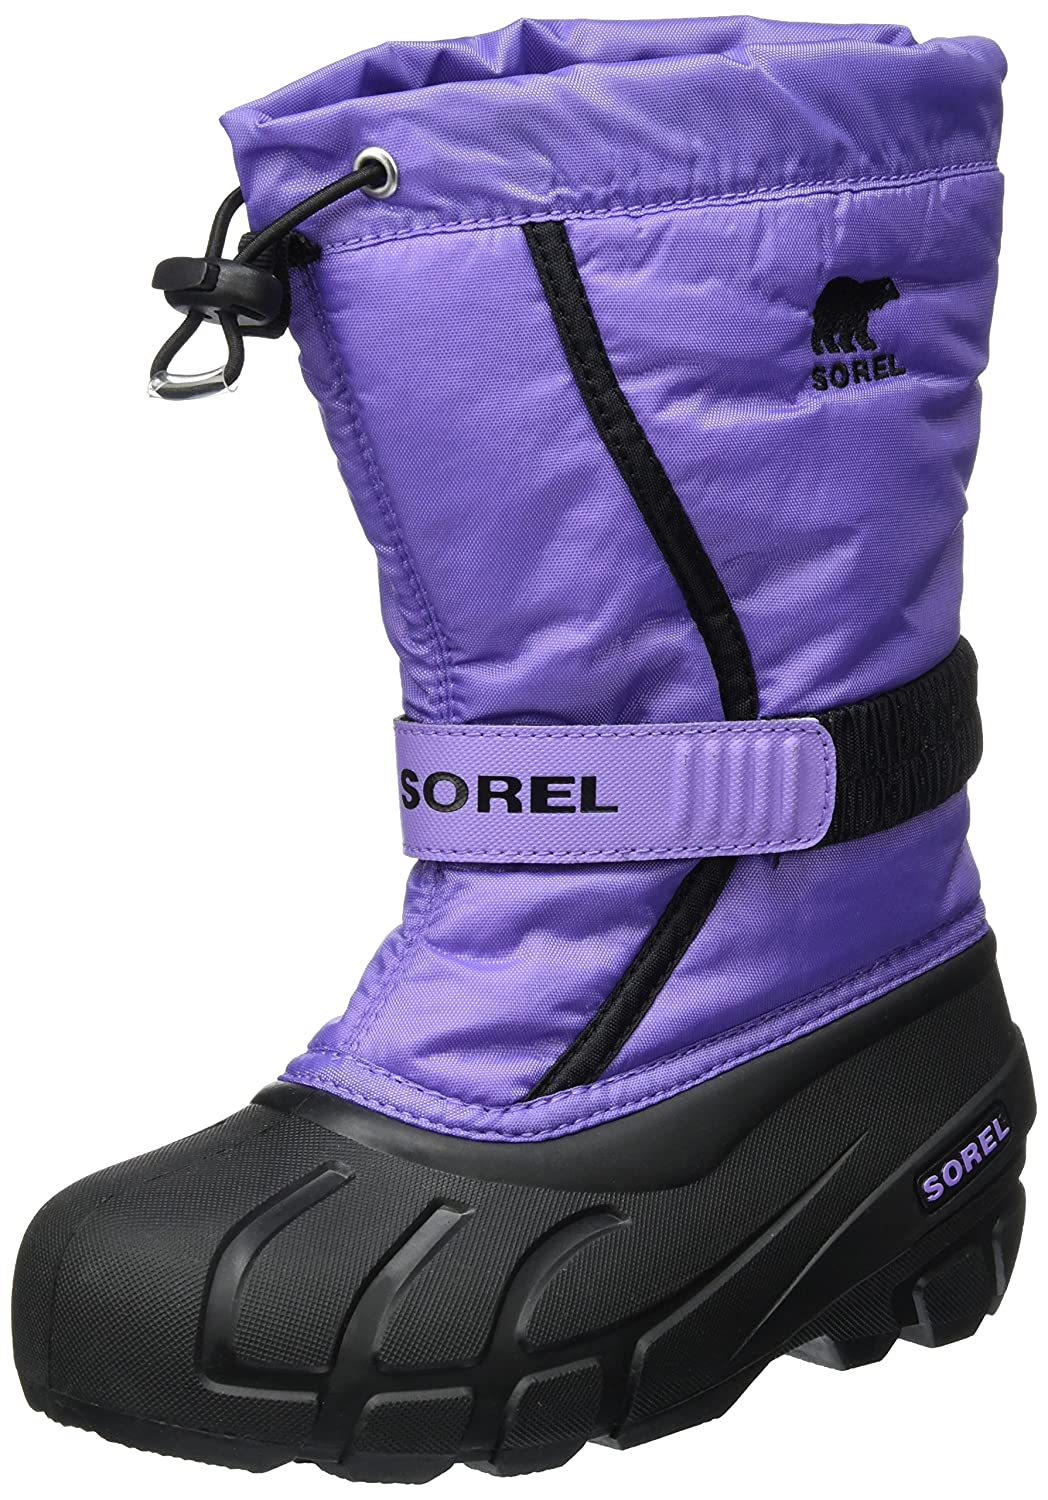 SOREL Kids' Youth Flurry Snow Boot -